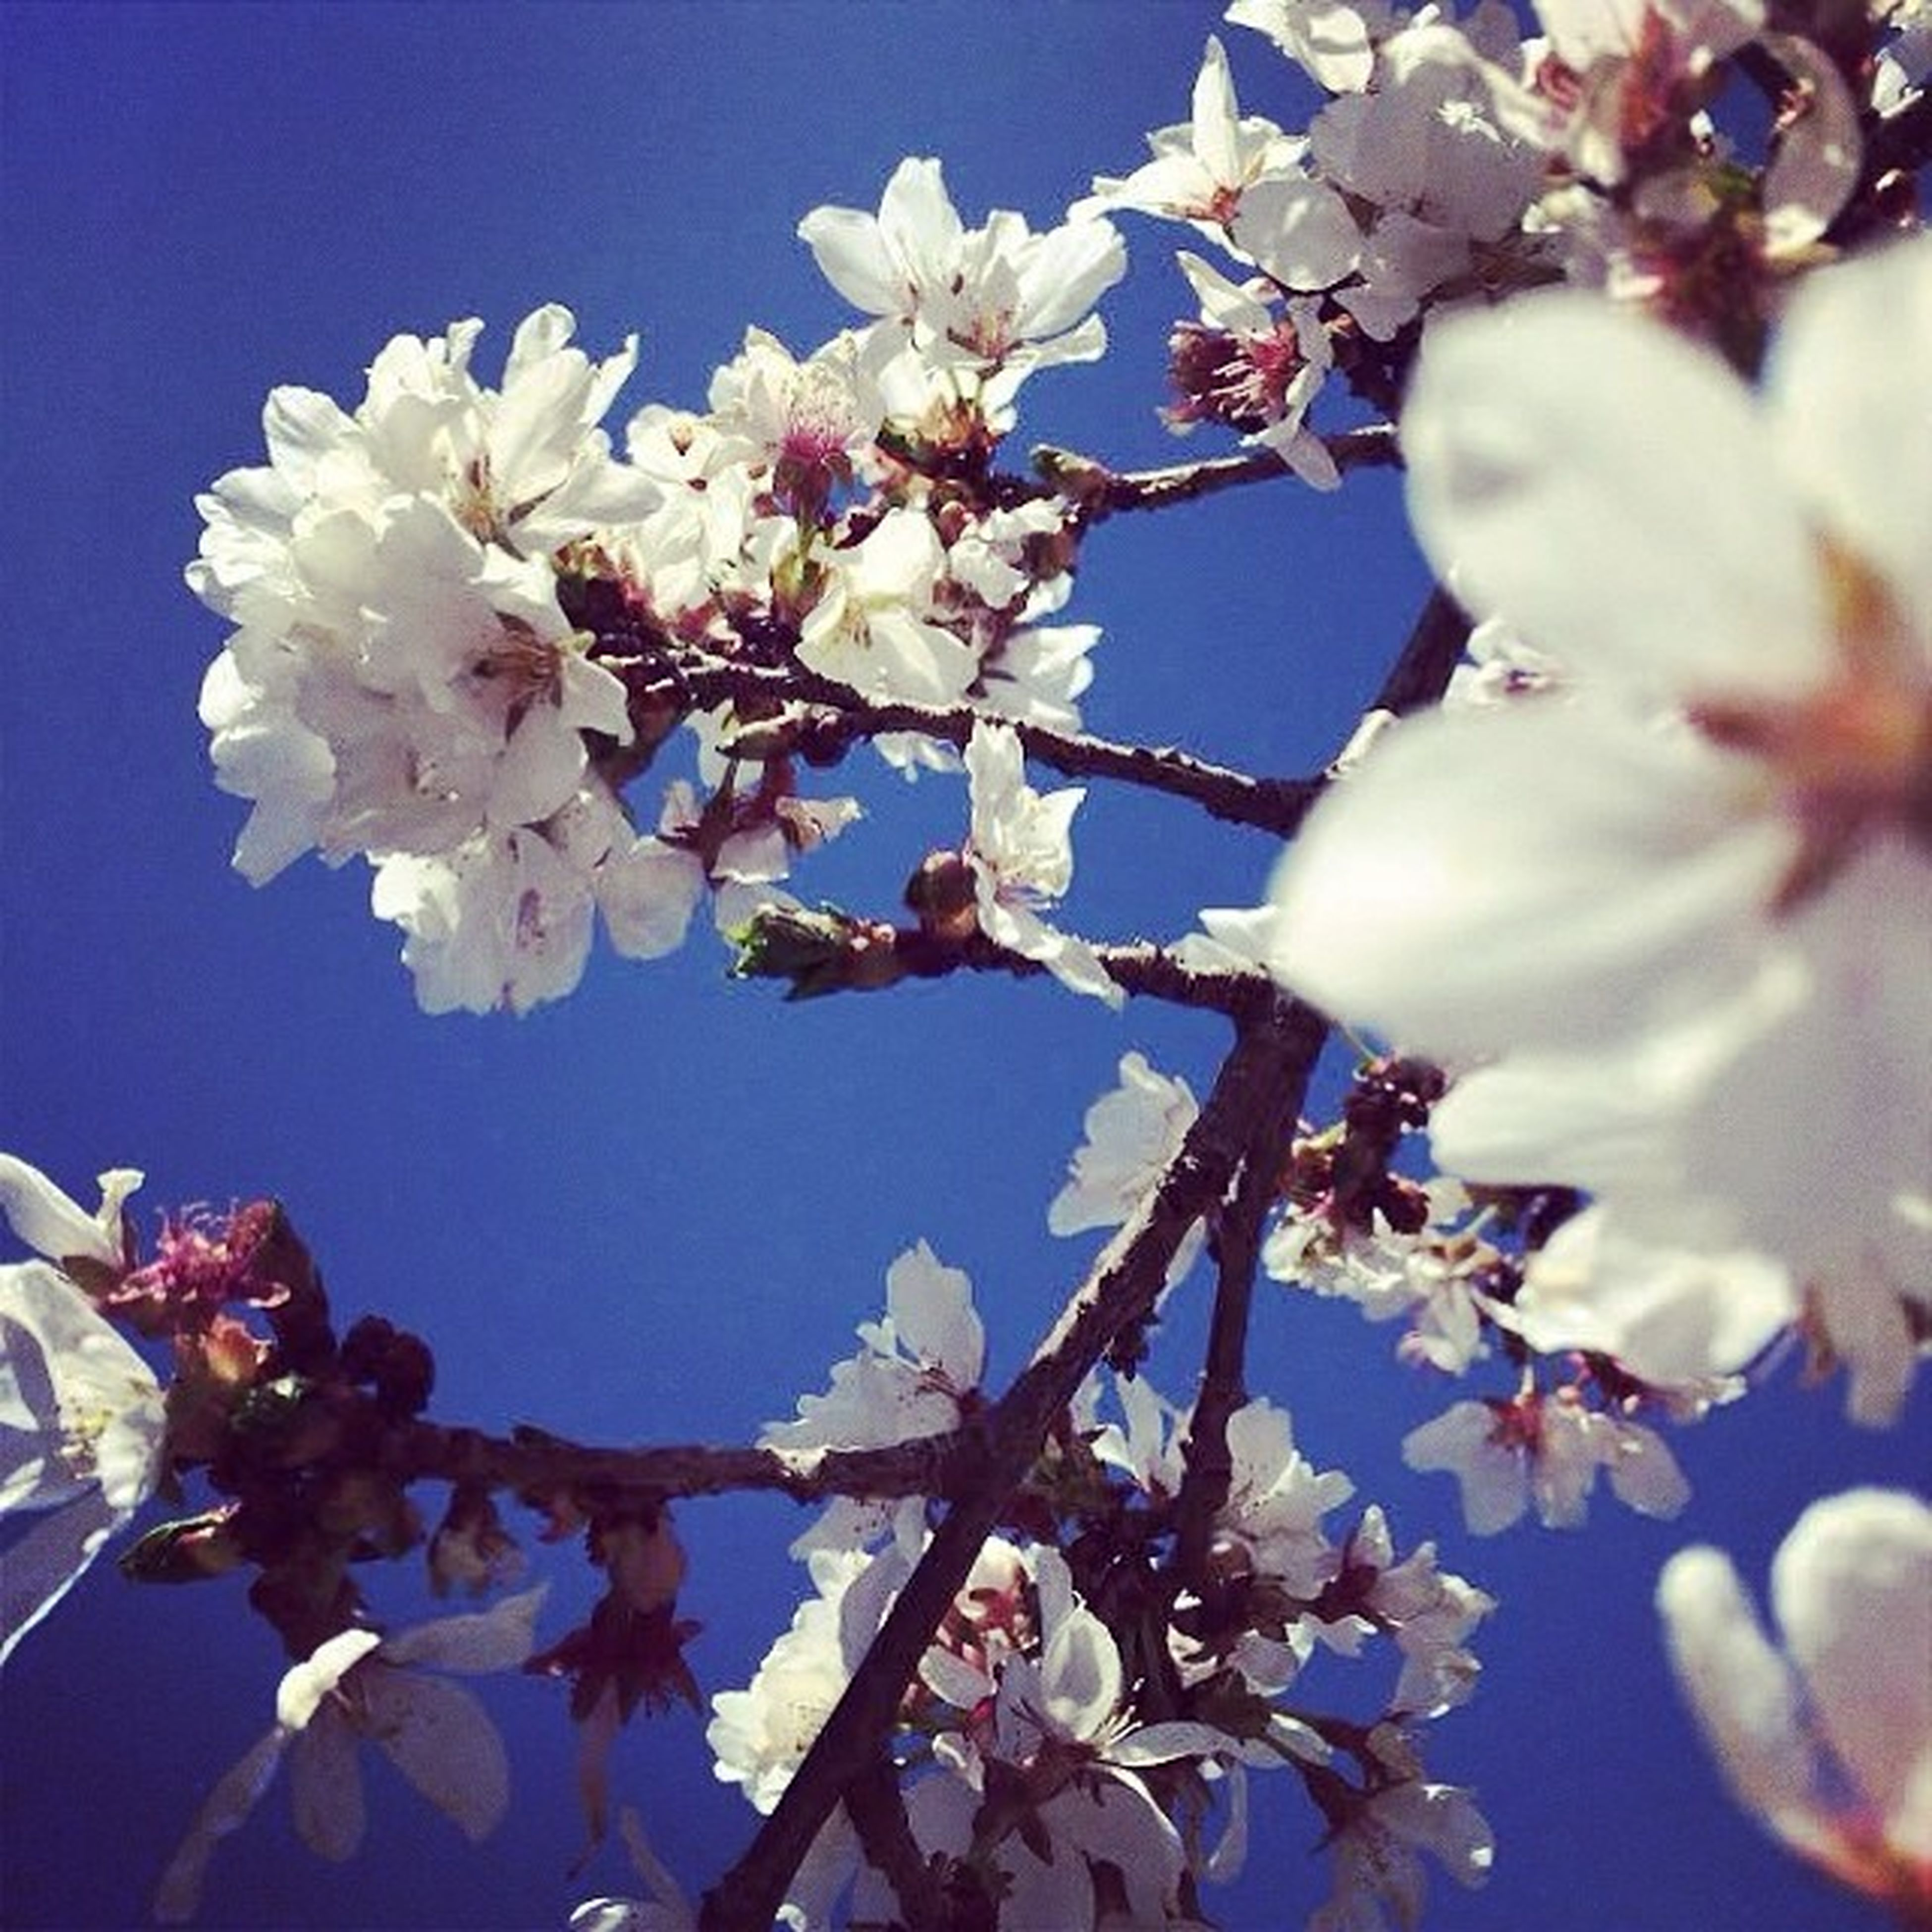 flower, branch, low angle view, freshness, white color, fragility, growth, cherry blossom, tree, beauty in nature, nature, petal, blossom, cherry tree, blooming, close-up, blue, in bloom, focus on foreground, twig